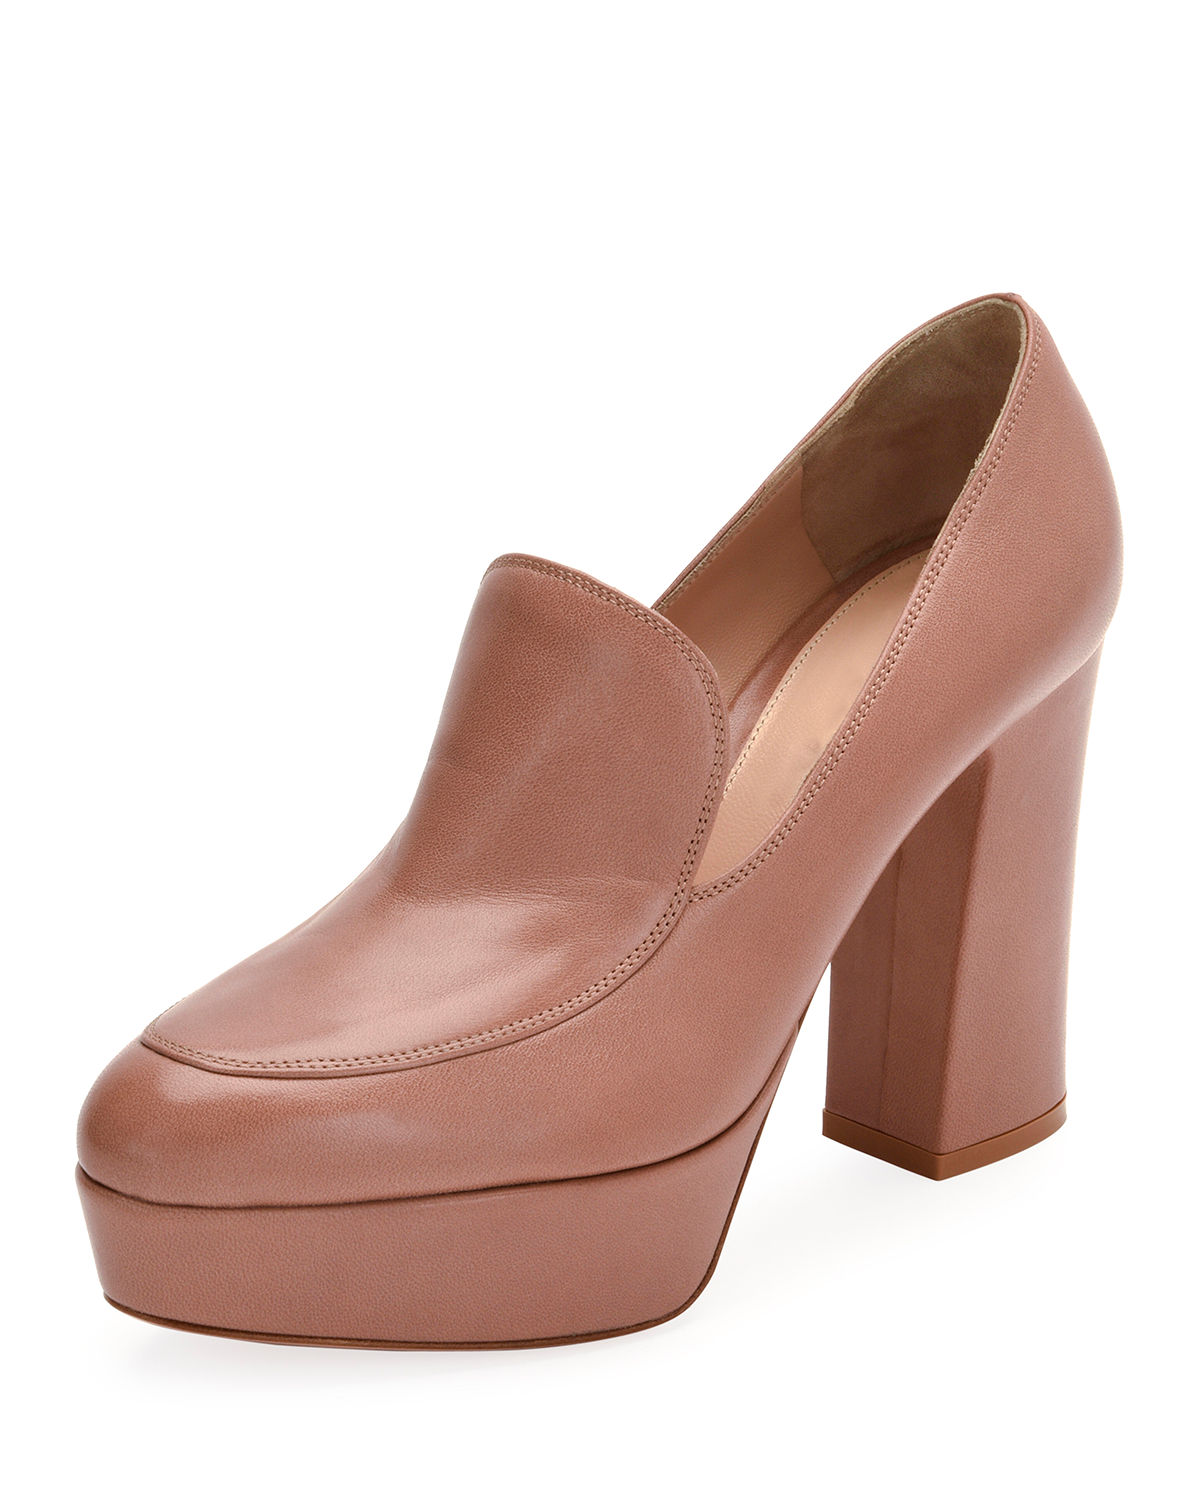 Platform Leather Loafer Pump